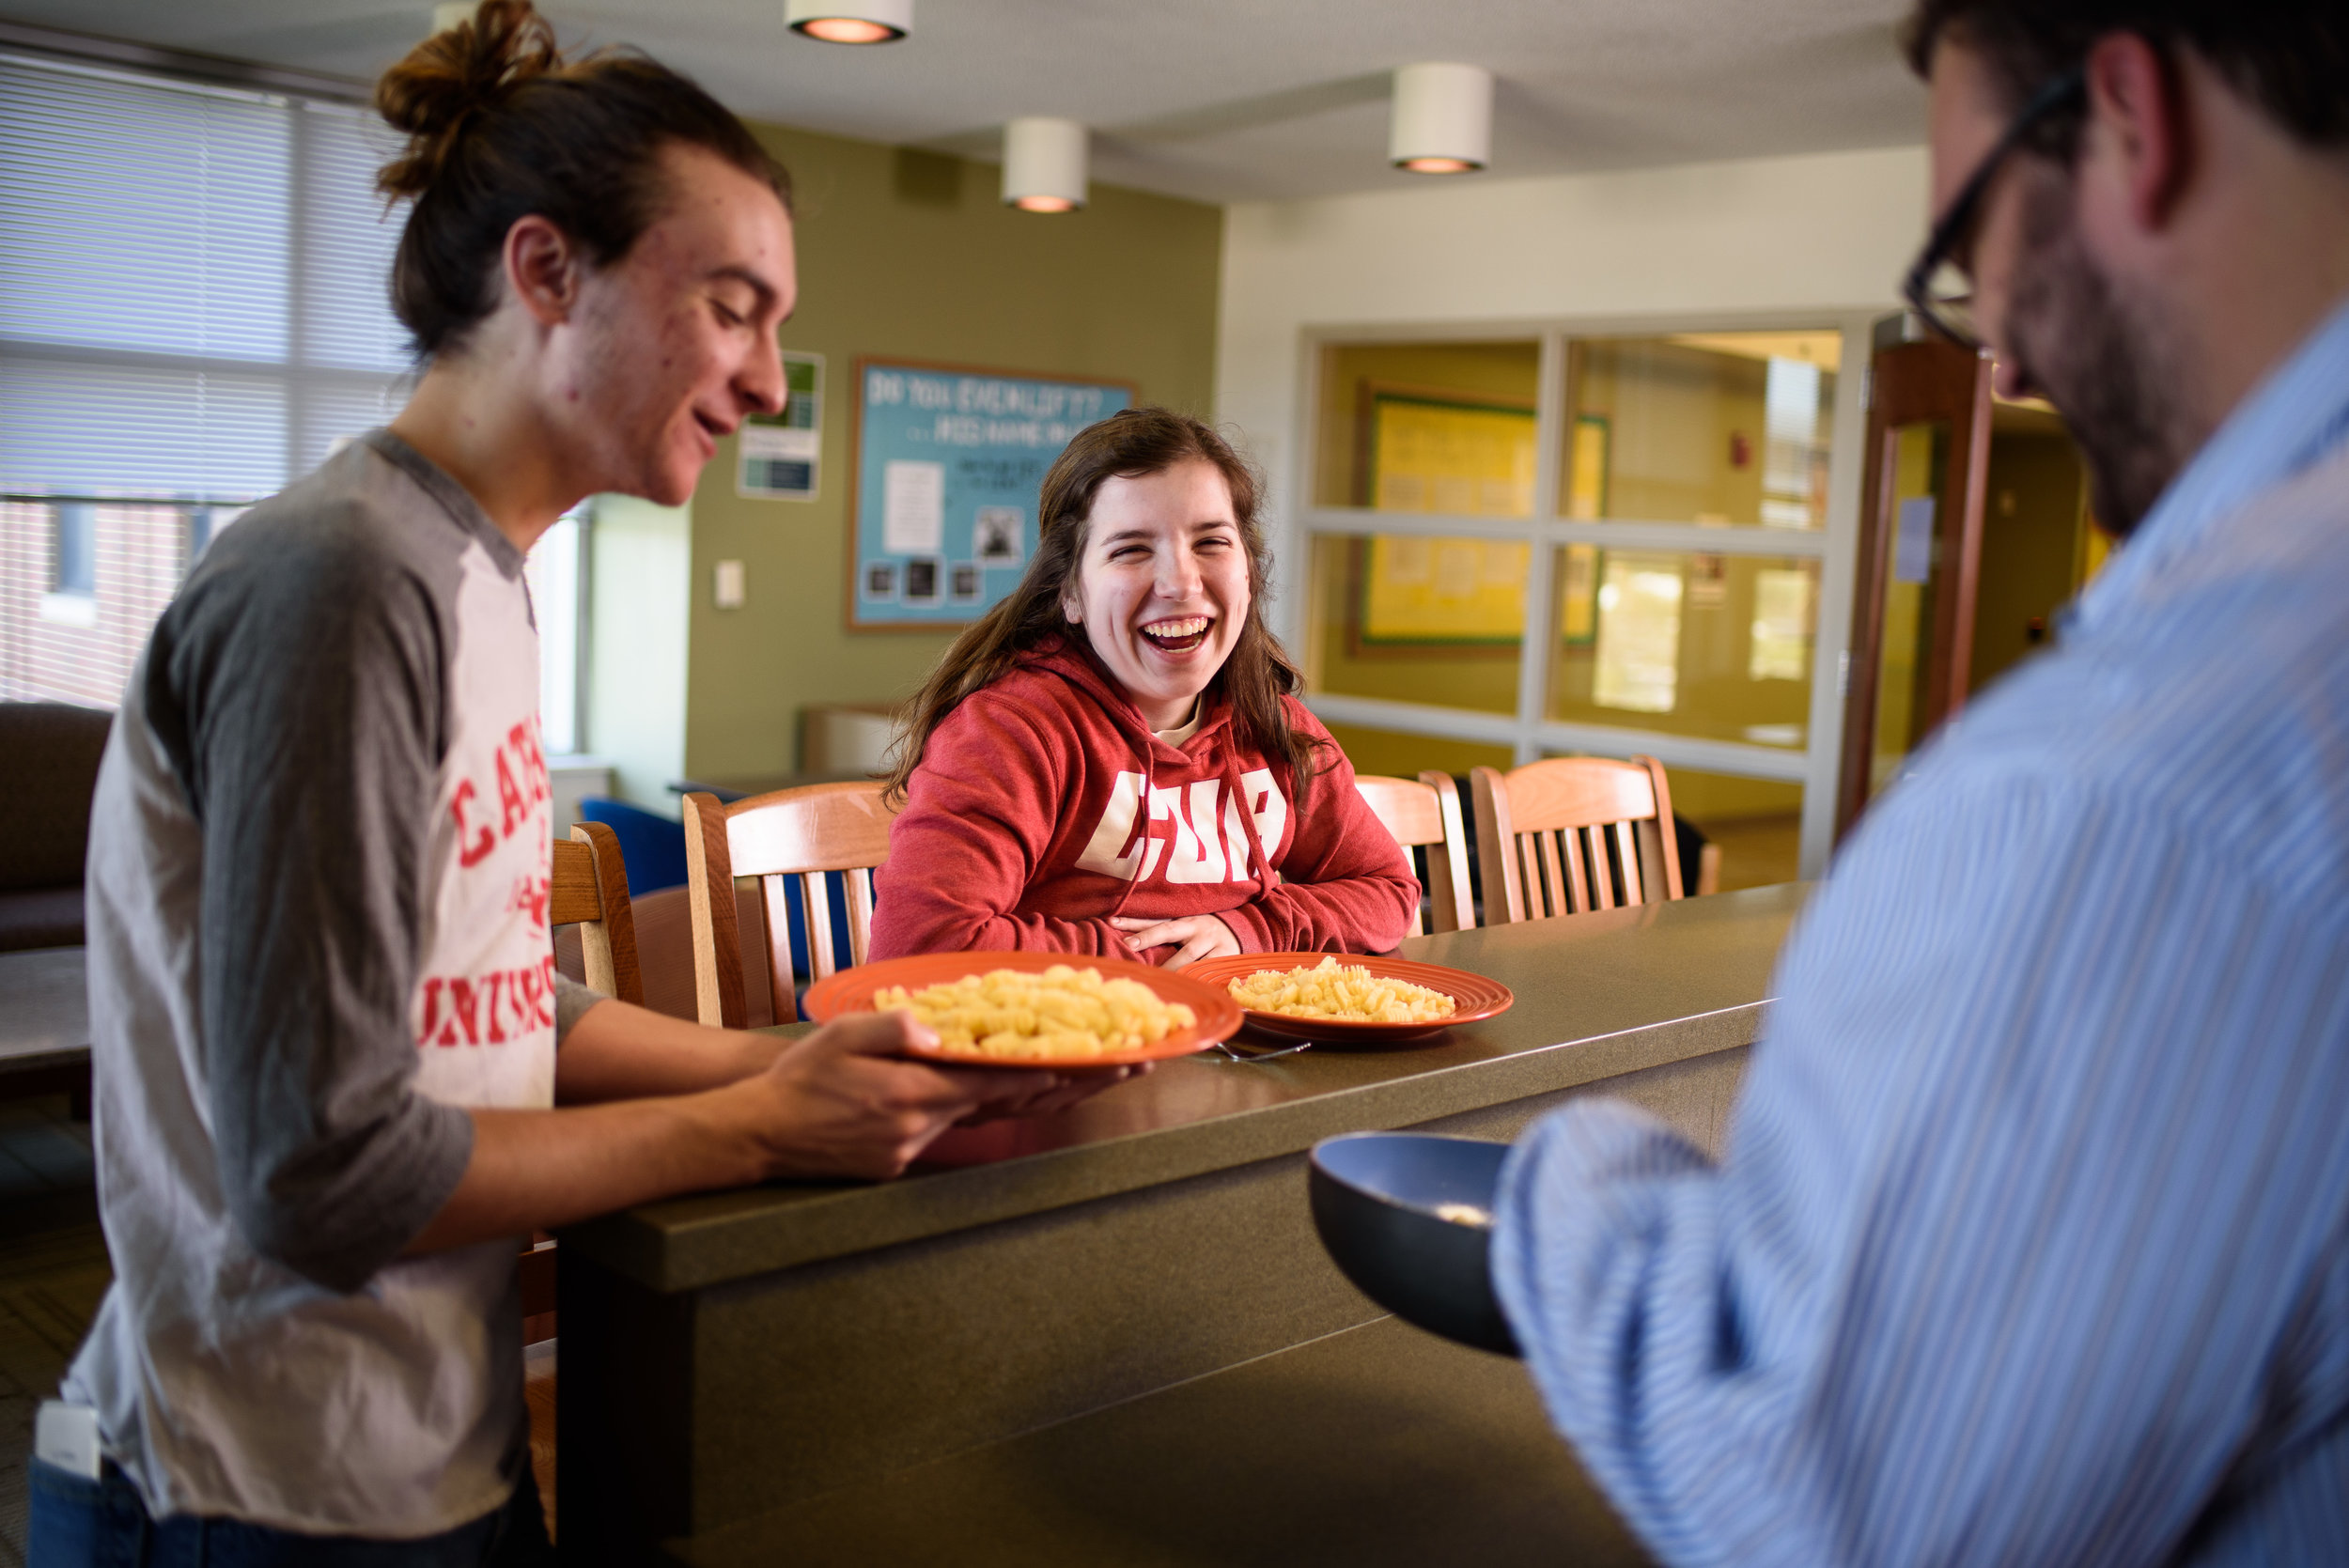 Students cooking and eating in Opus Hall Dorms at Catholic University.